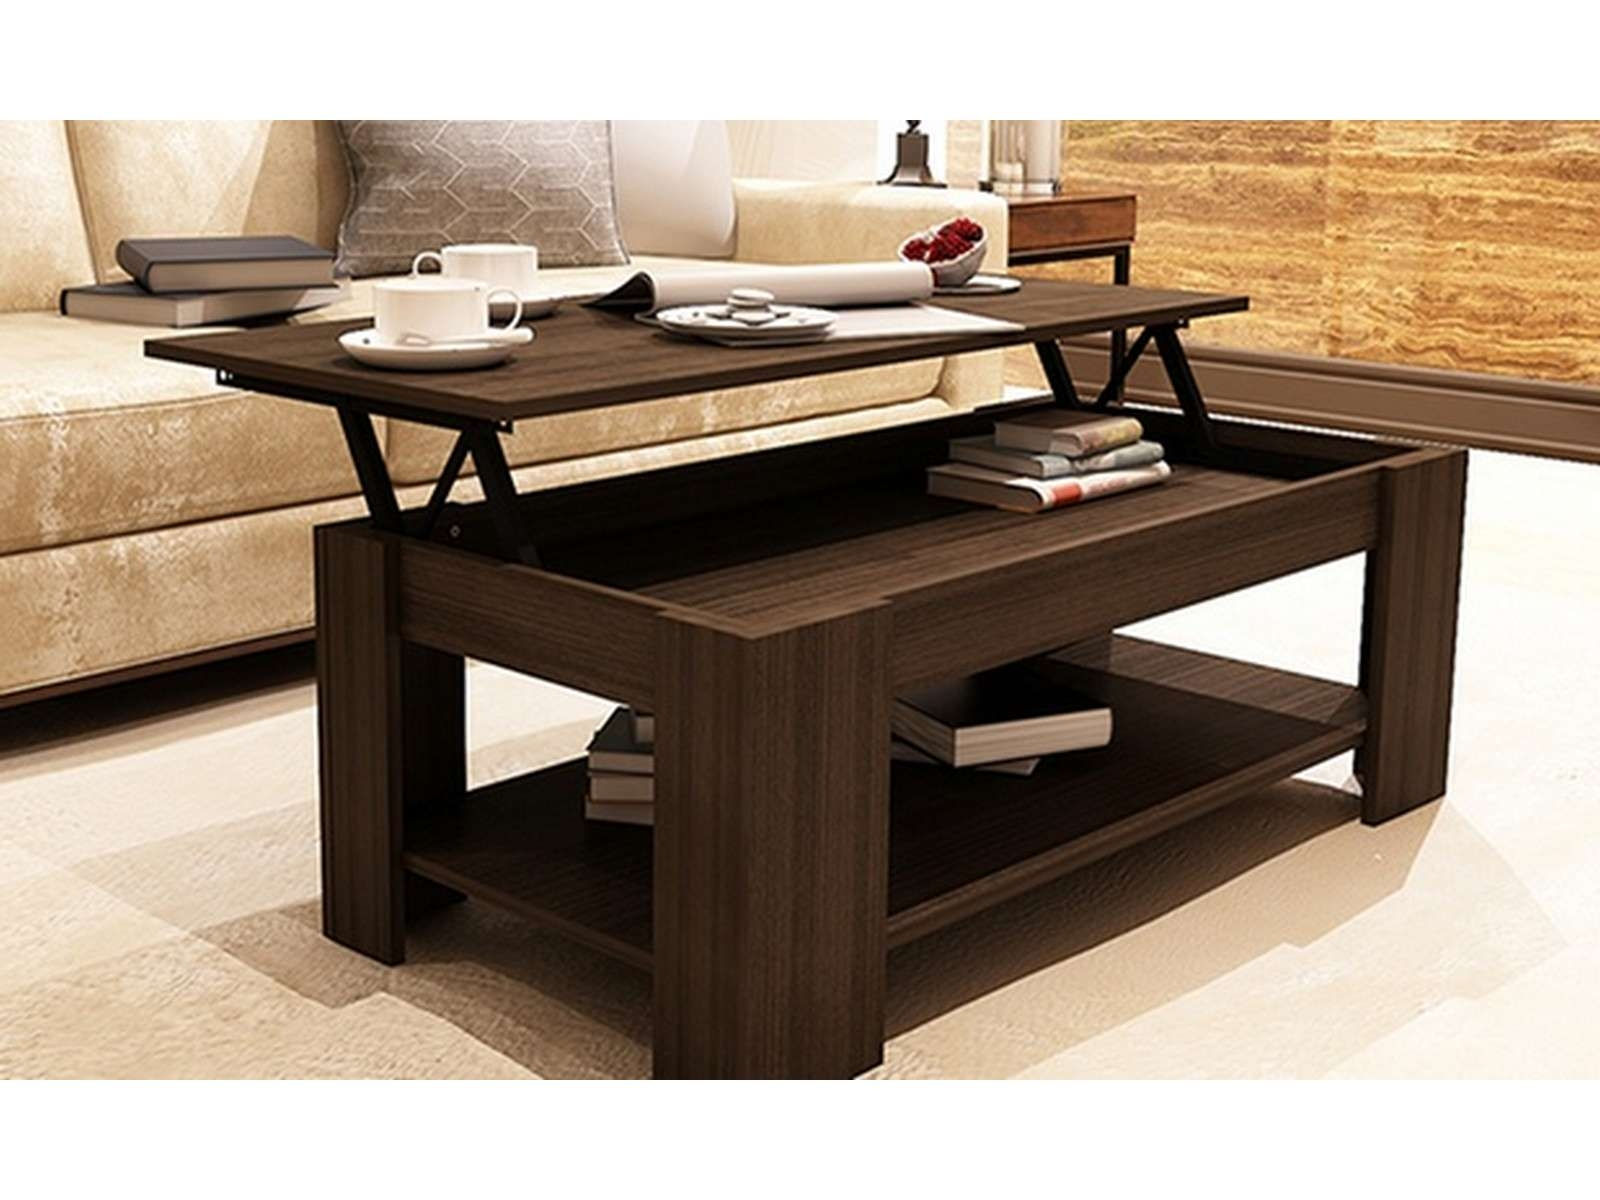 Most Recent Coffee Tables With Lift Top And Storage Throughout Coffee Tables : Essential Home Lift Top Storage Ottoman Solid Wood (View 14 of 20)